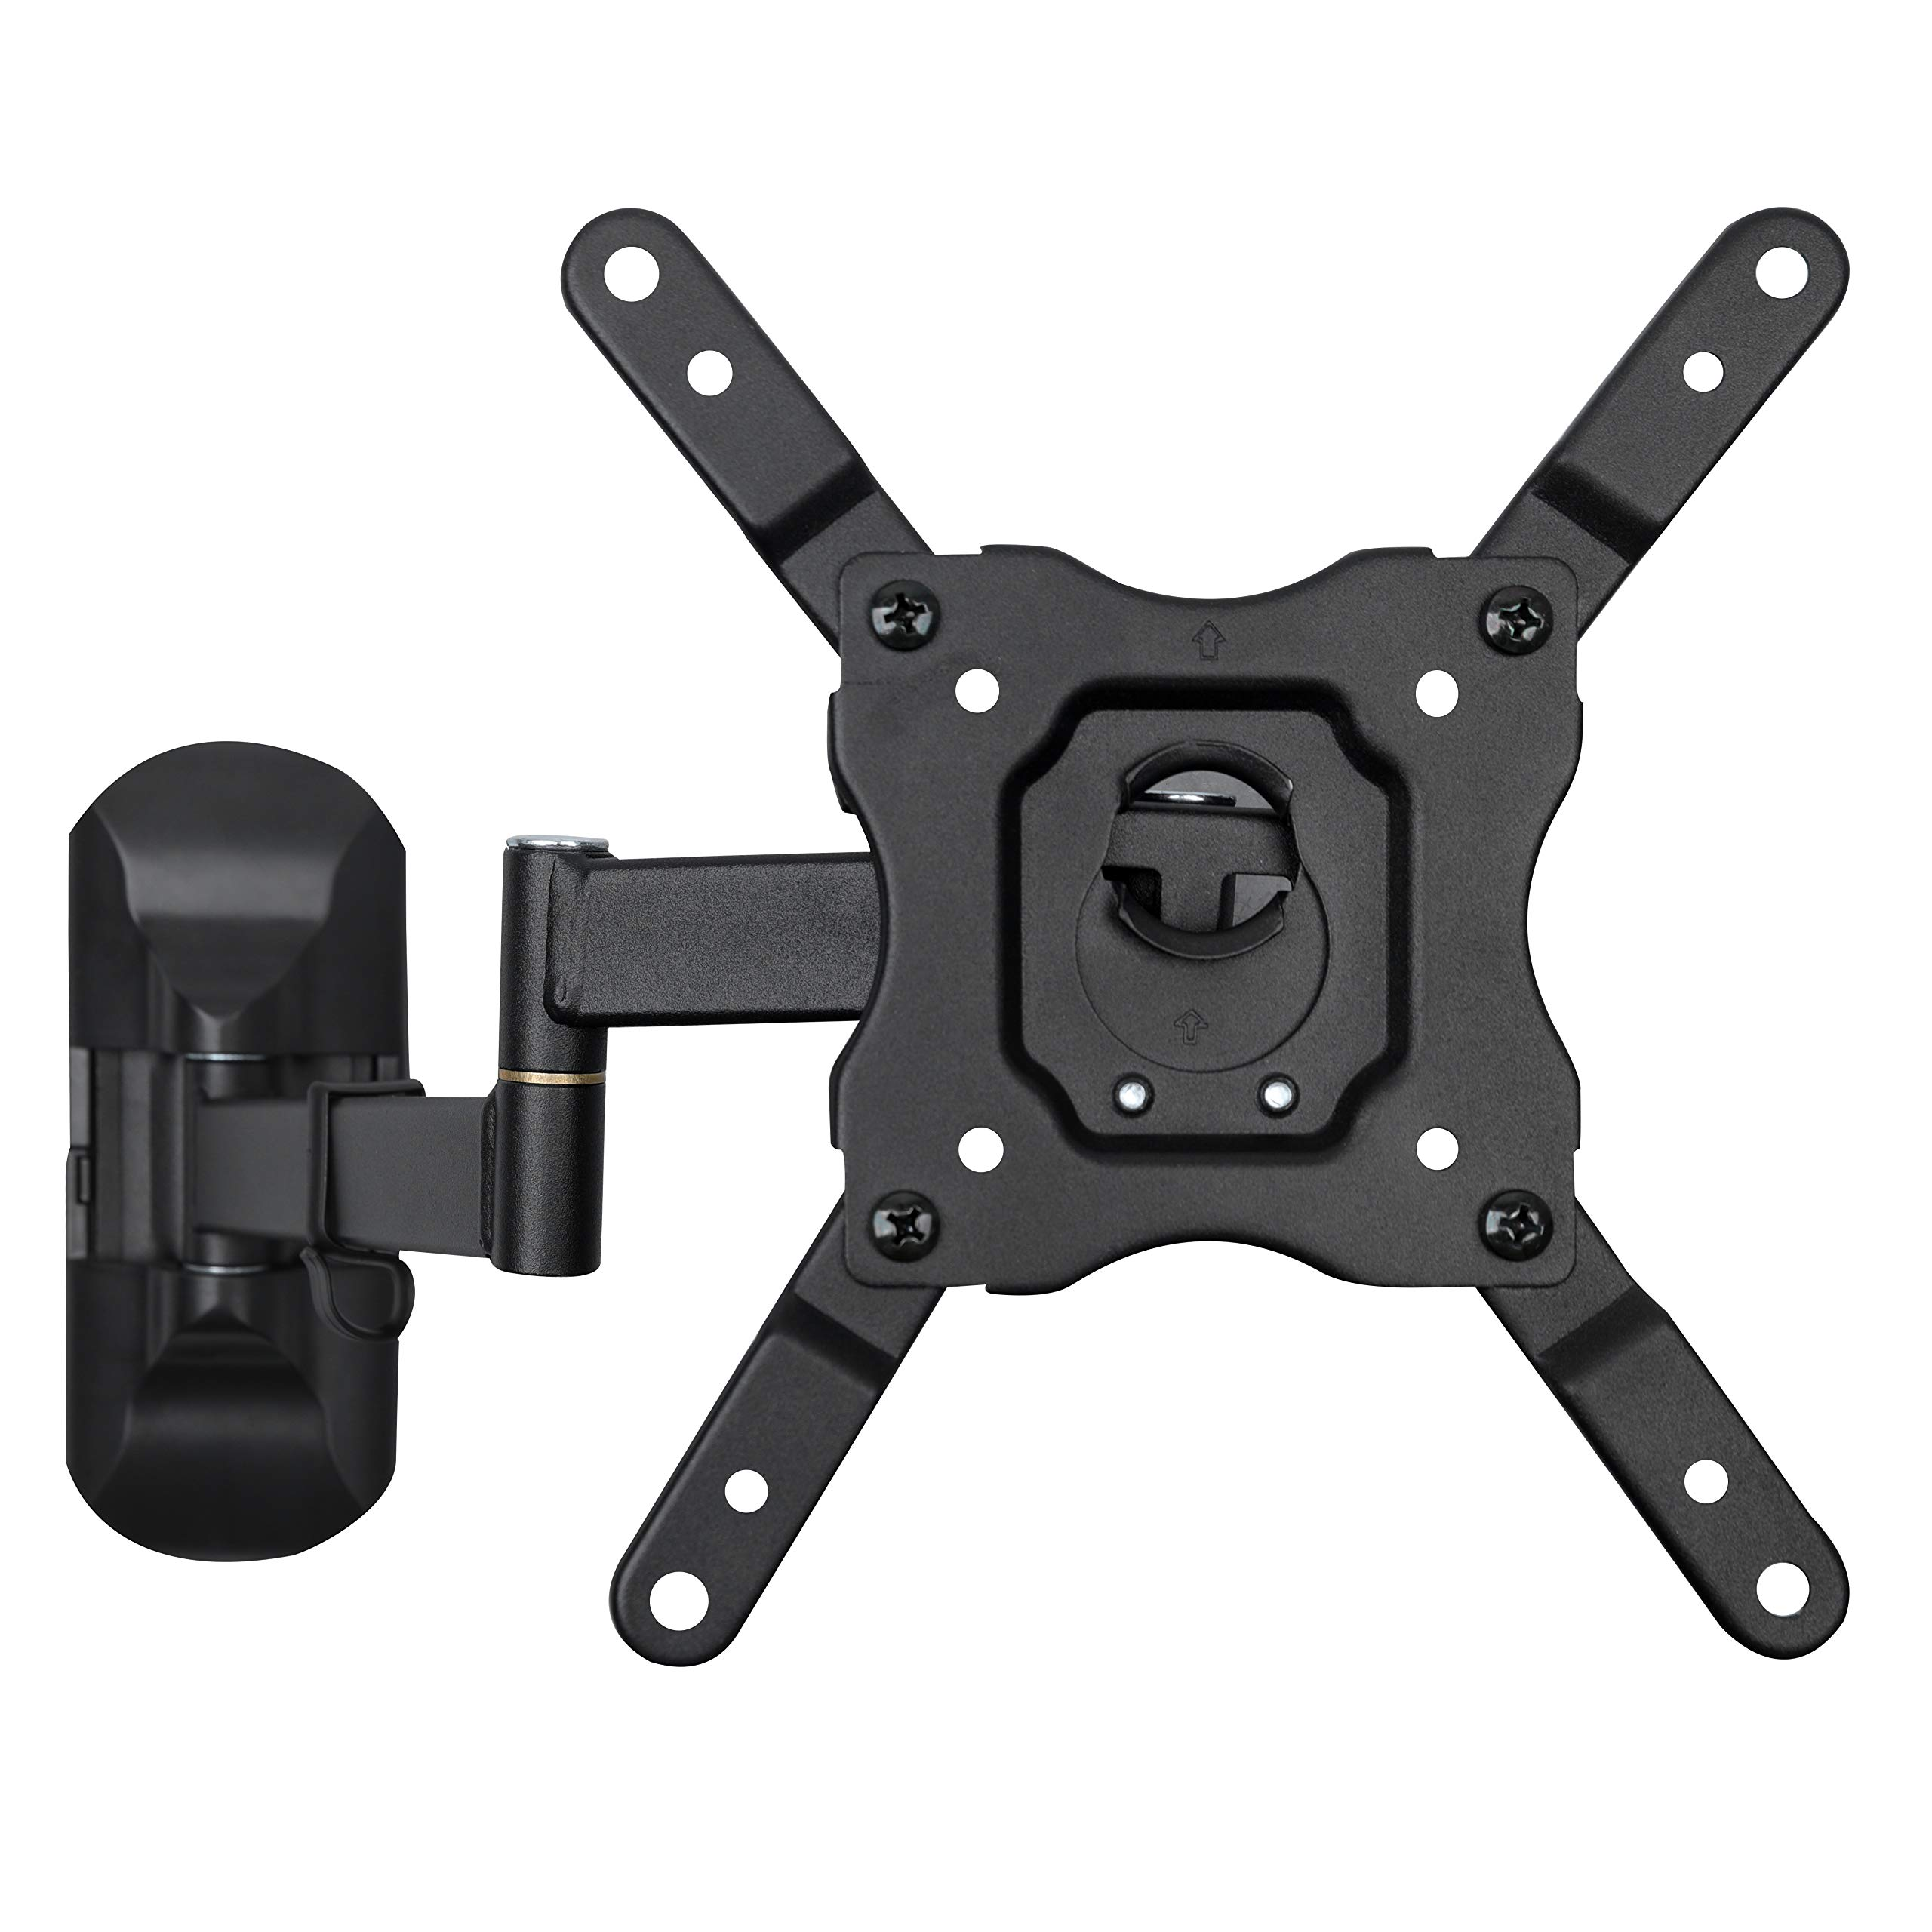 DYNAVISTA Full Motion TV Wall Mount Bracket with Tilting Swivel Articulating Arm up to VESA 200 x 200 mm and 55 lbs for 12 to 40 inch TV Flat Screens and Monitors (Black)